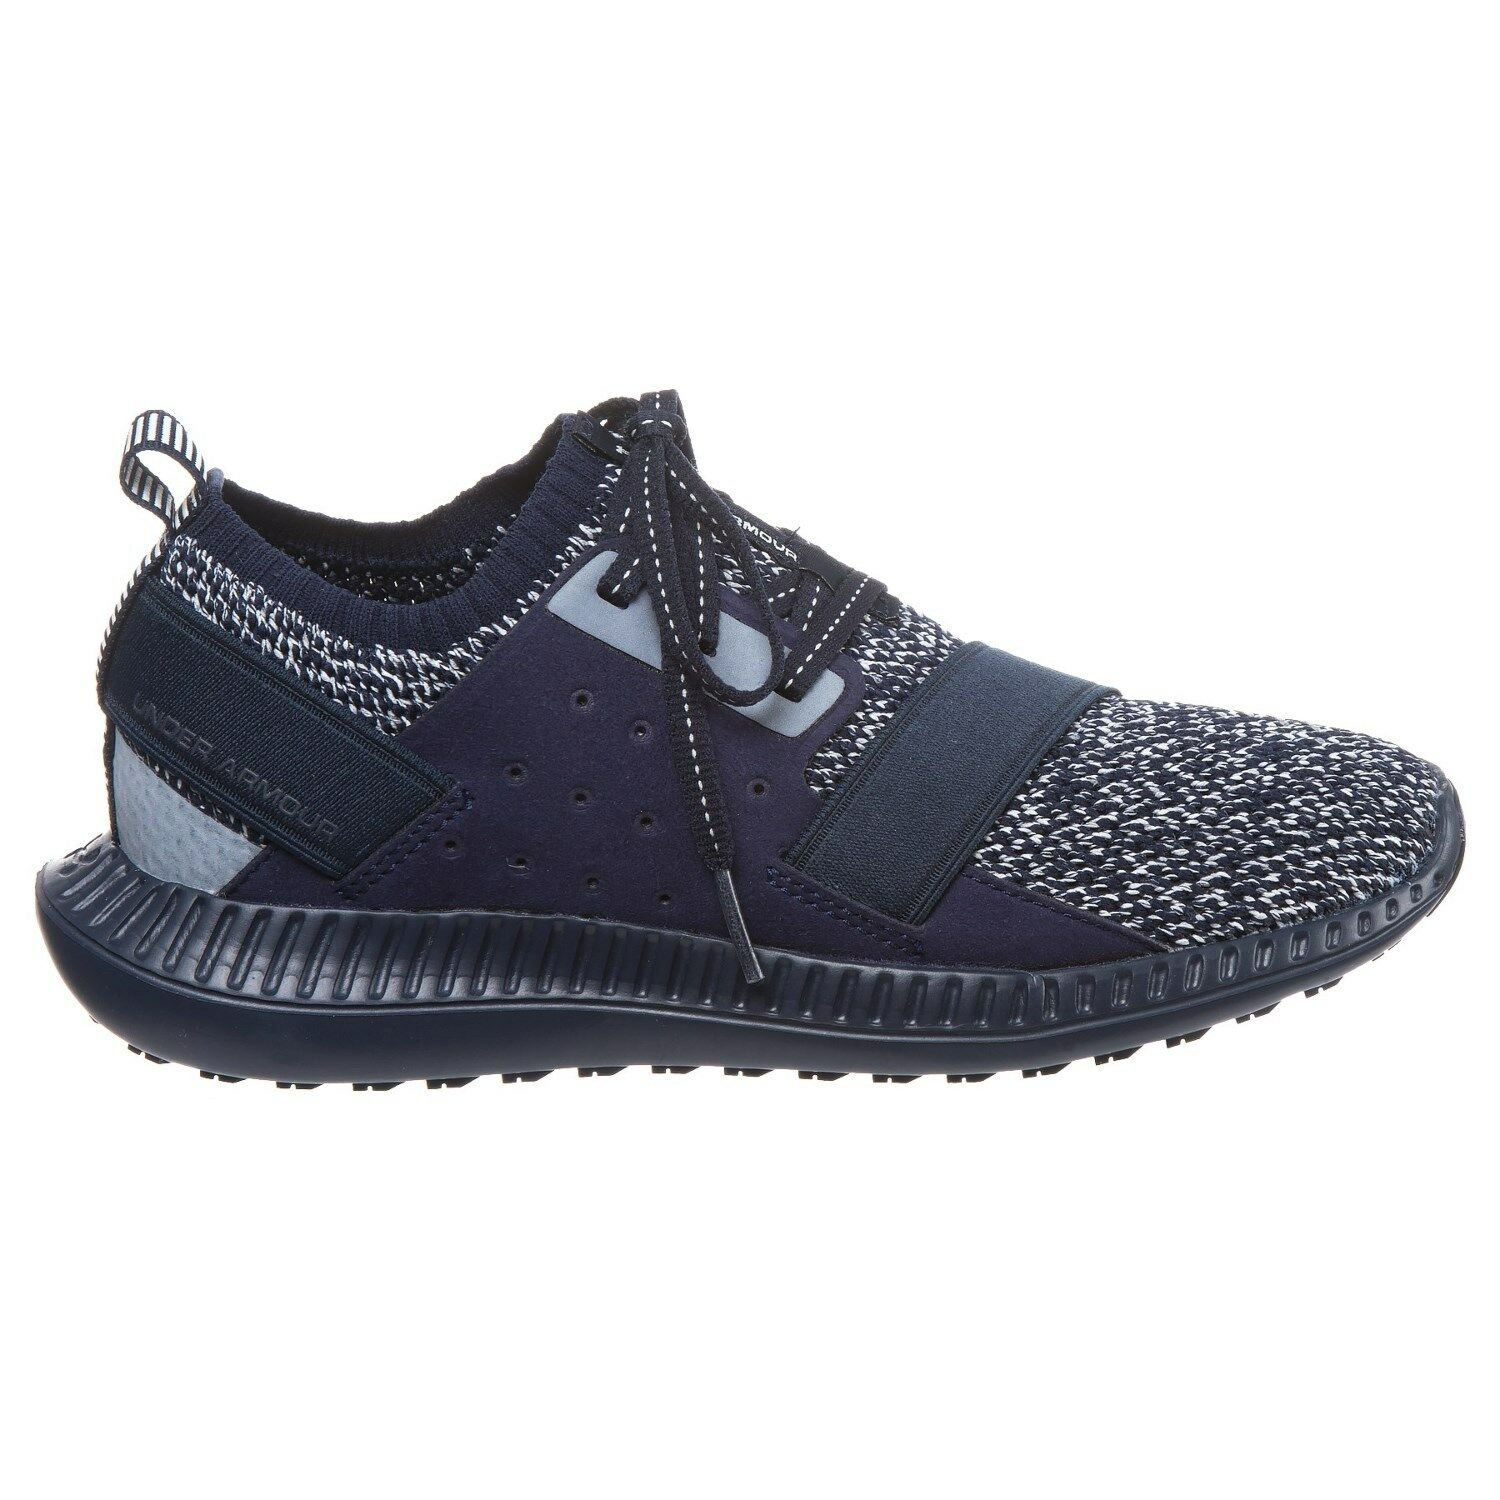 new concept bfb95 5debd Under Armour Threadborne Shift SNEAKERS Shoes Youth Boys Navy Size 4.5y